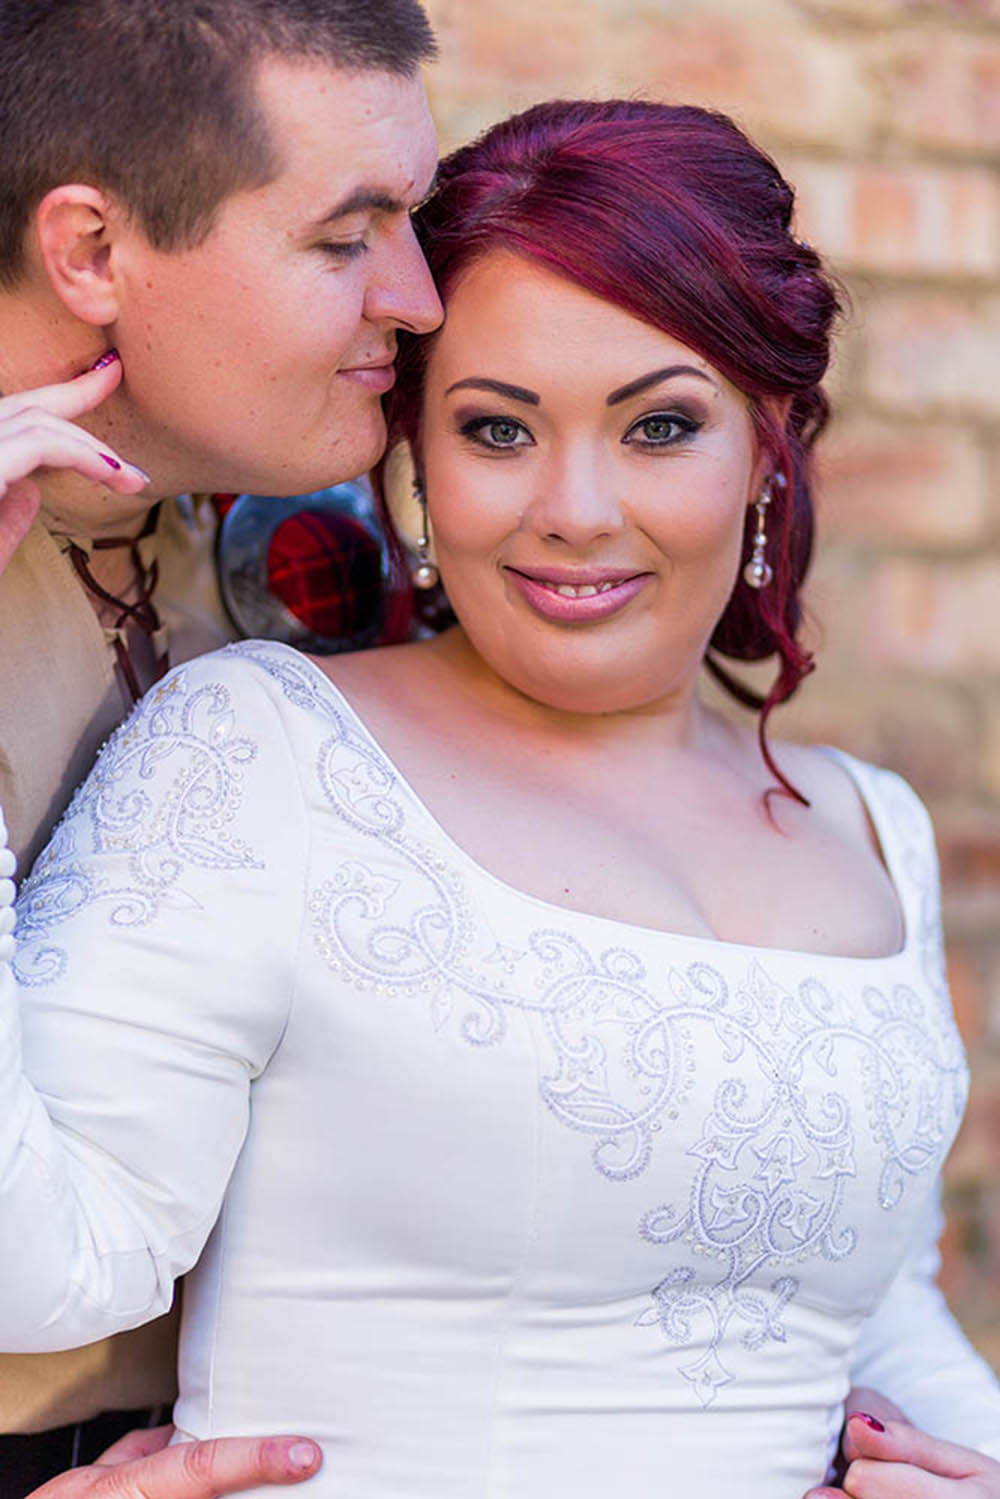 medieval-themed-wedding-medieval-wedding-dgr-photography-castle-wedding-85